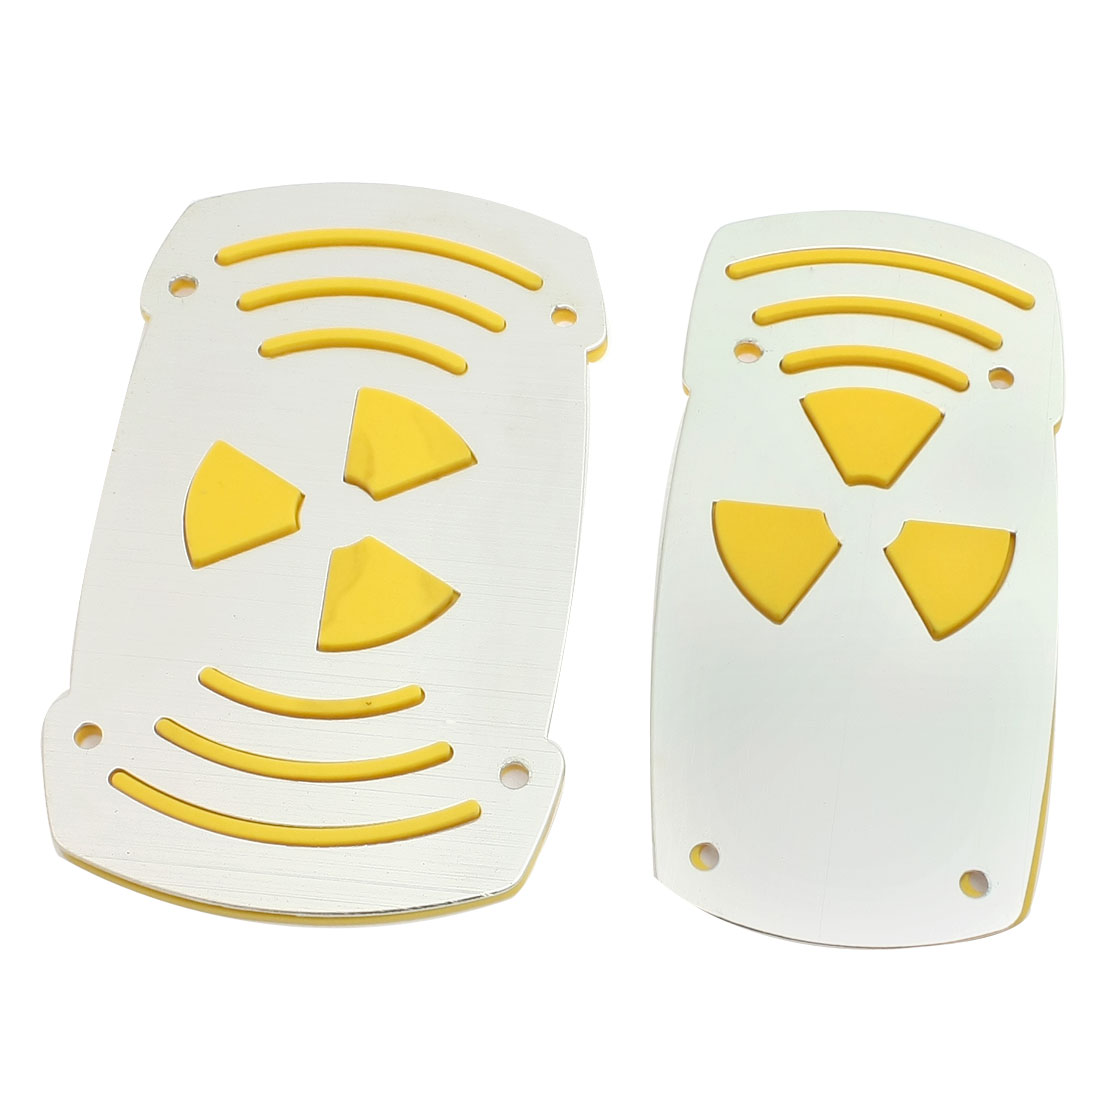 2 Pcs Yellow Silver Tone Nonslip Pedal Covers for Automatic Transmission Car